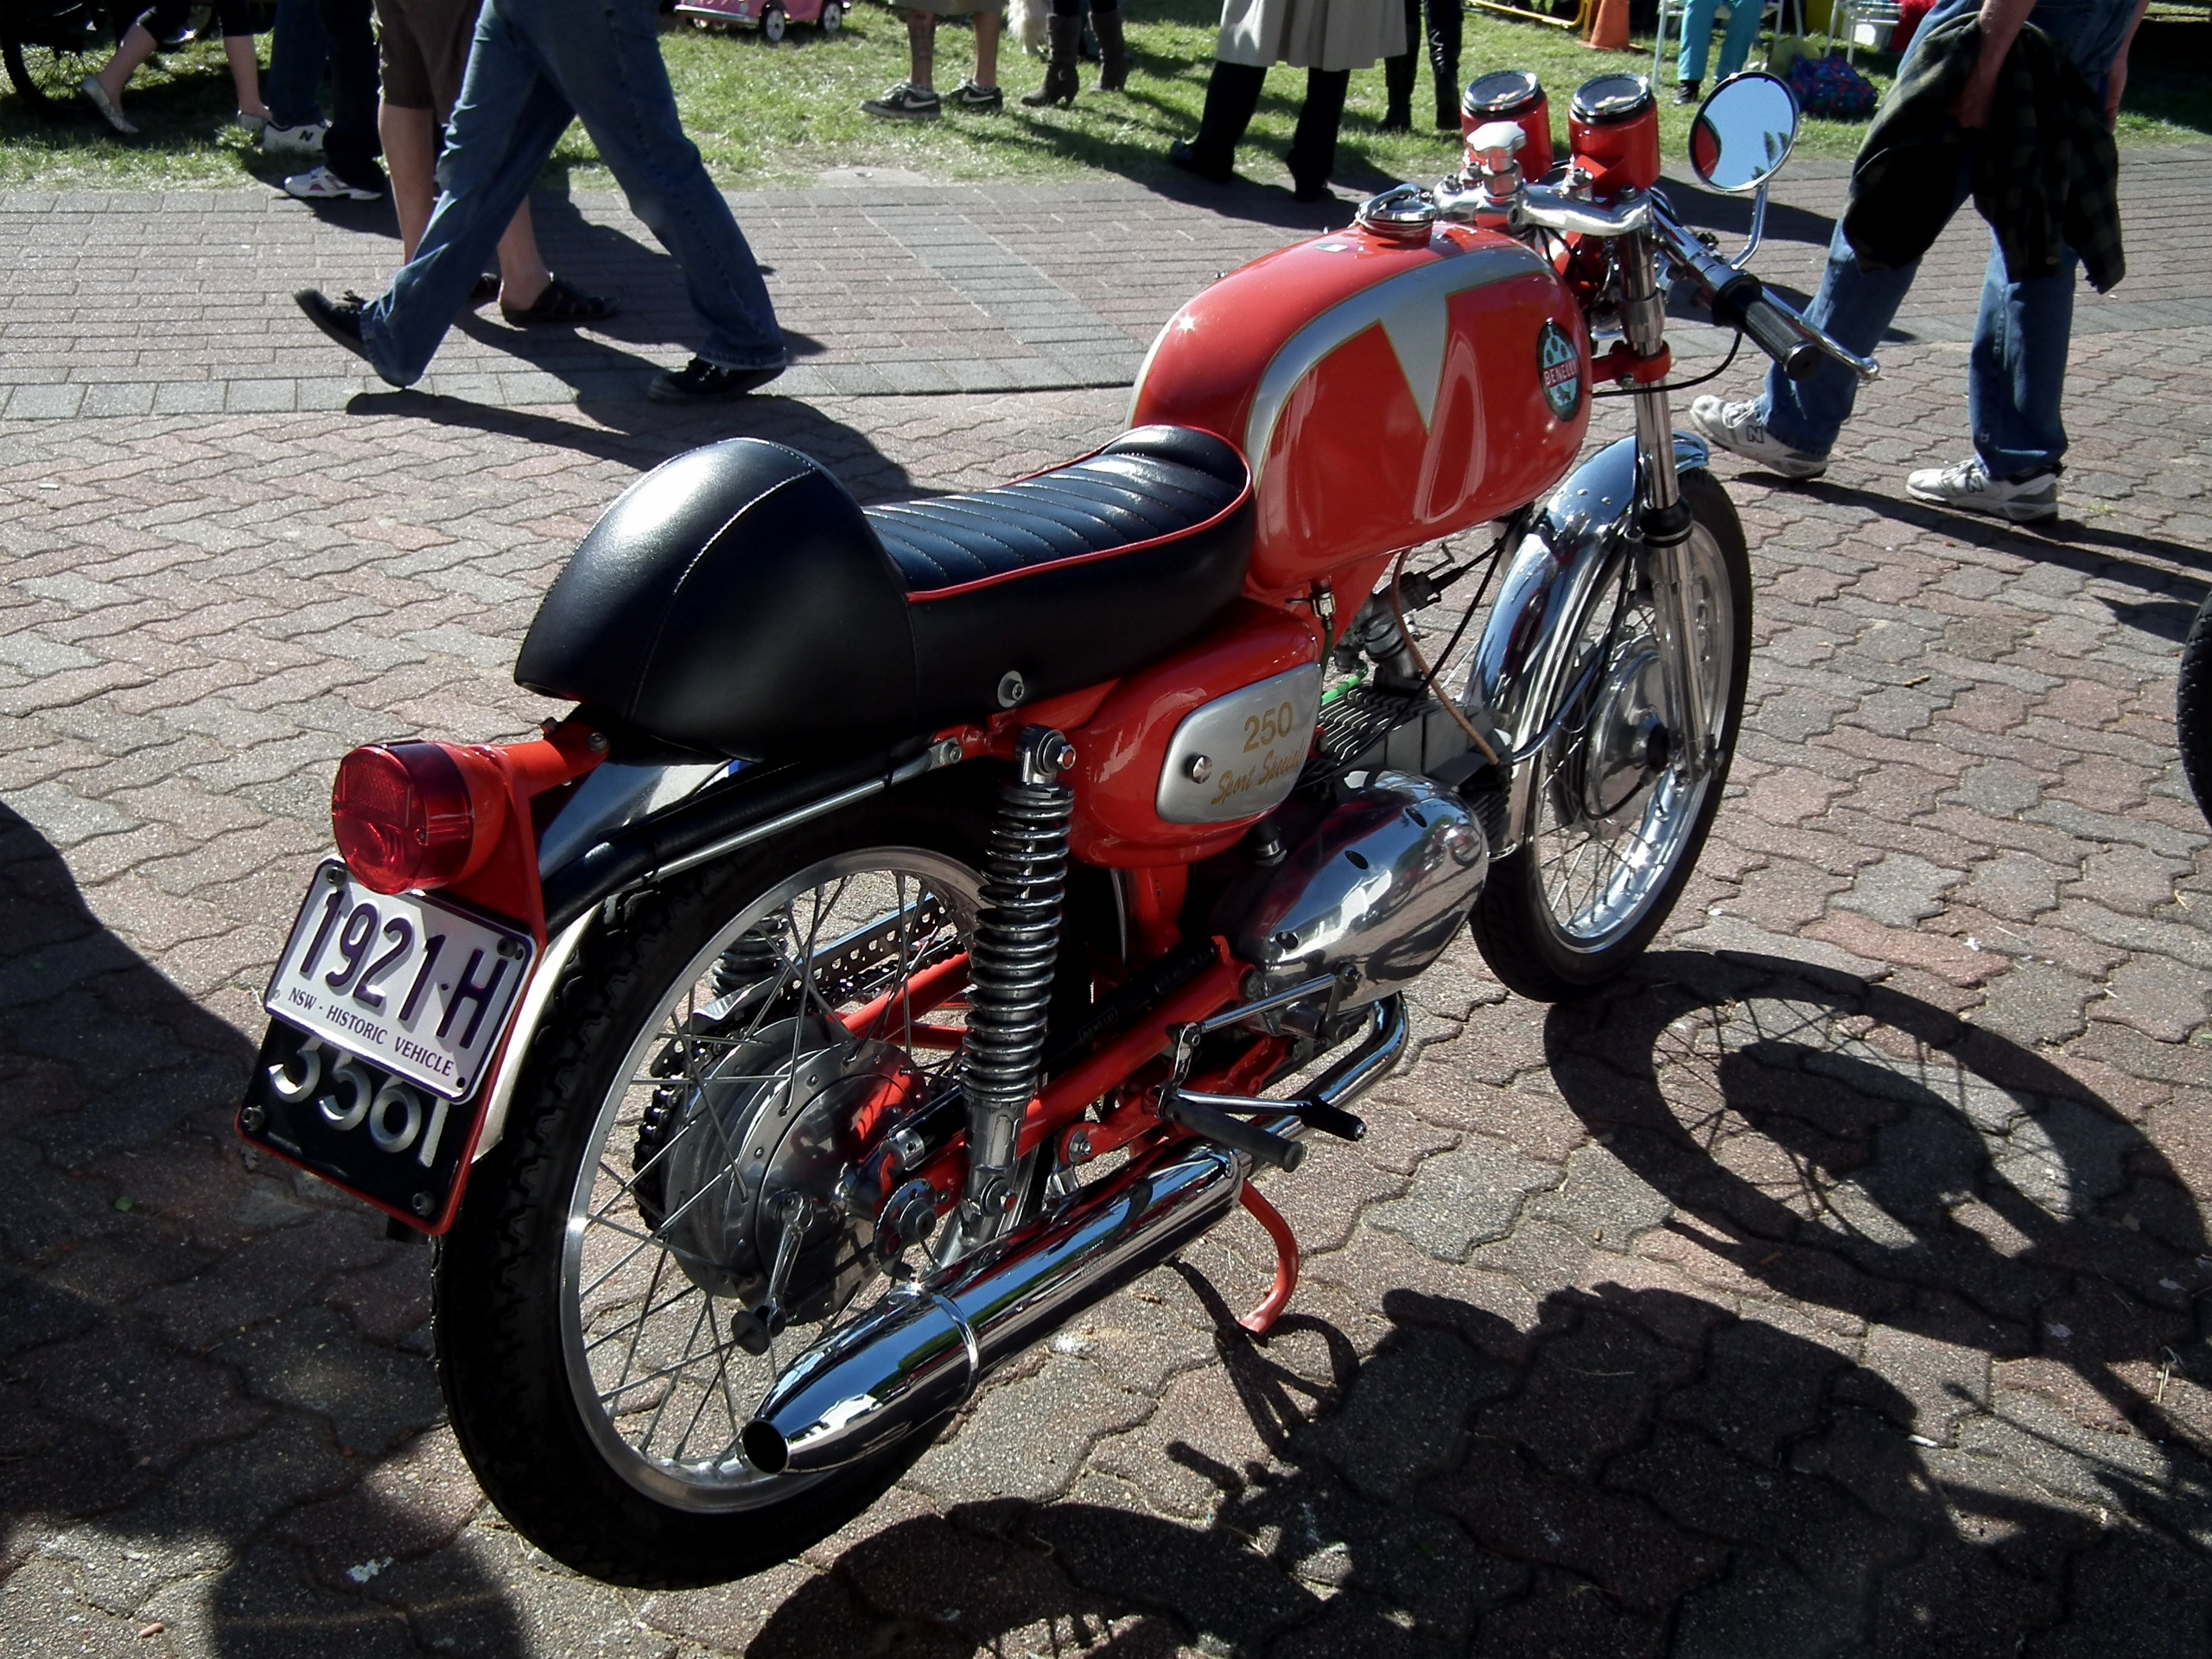 File:1968 Benelli 250 Sport Speciale Motor Cycle